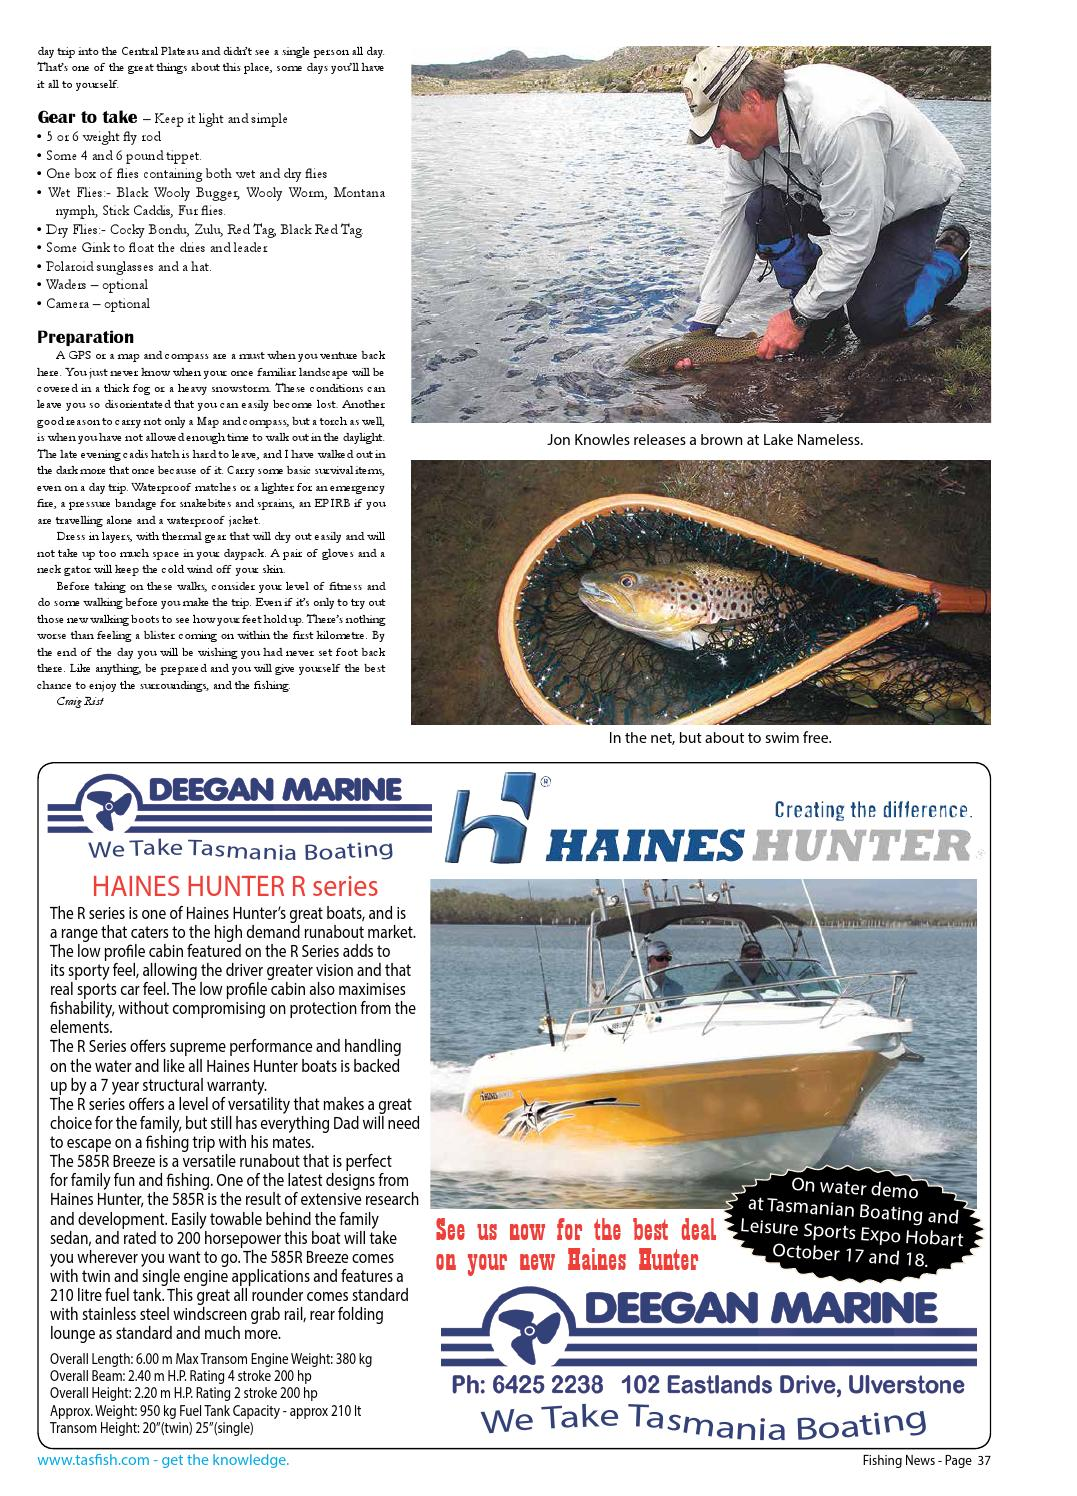 Tasmanian Fishing and Boating News Issue 082 2009 October by